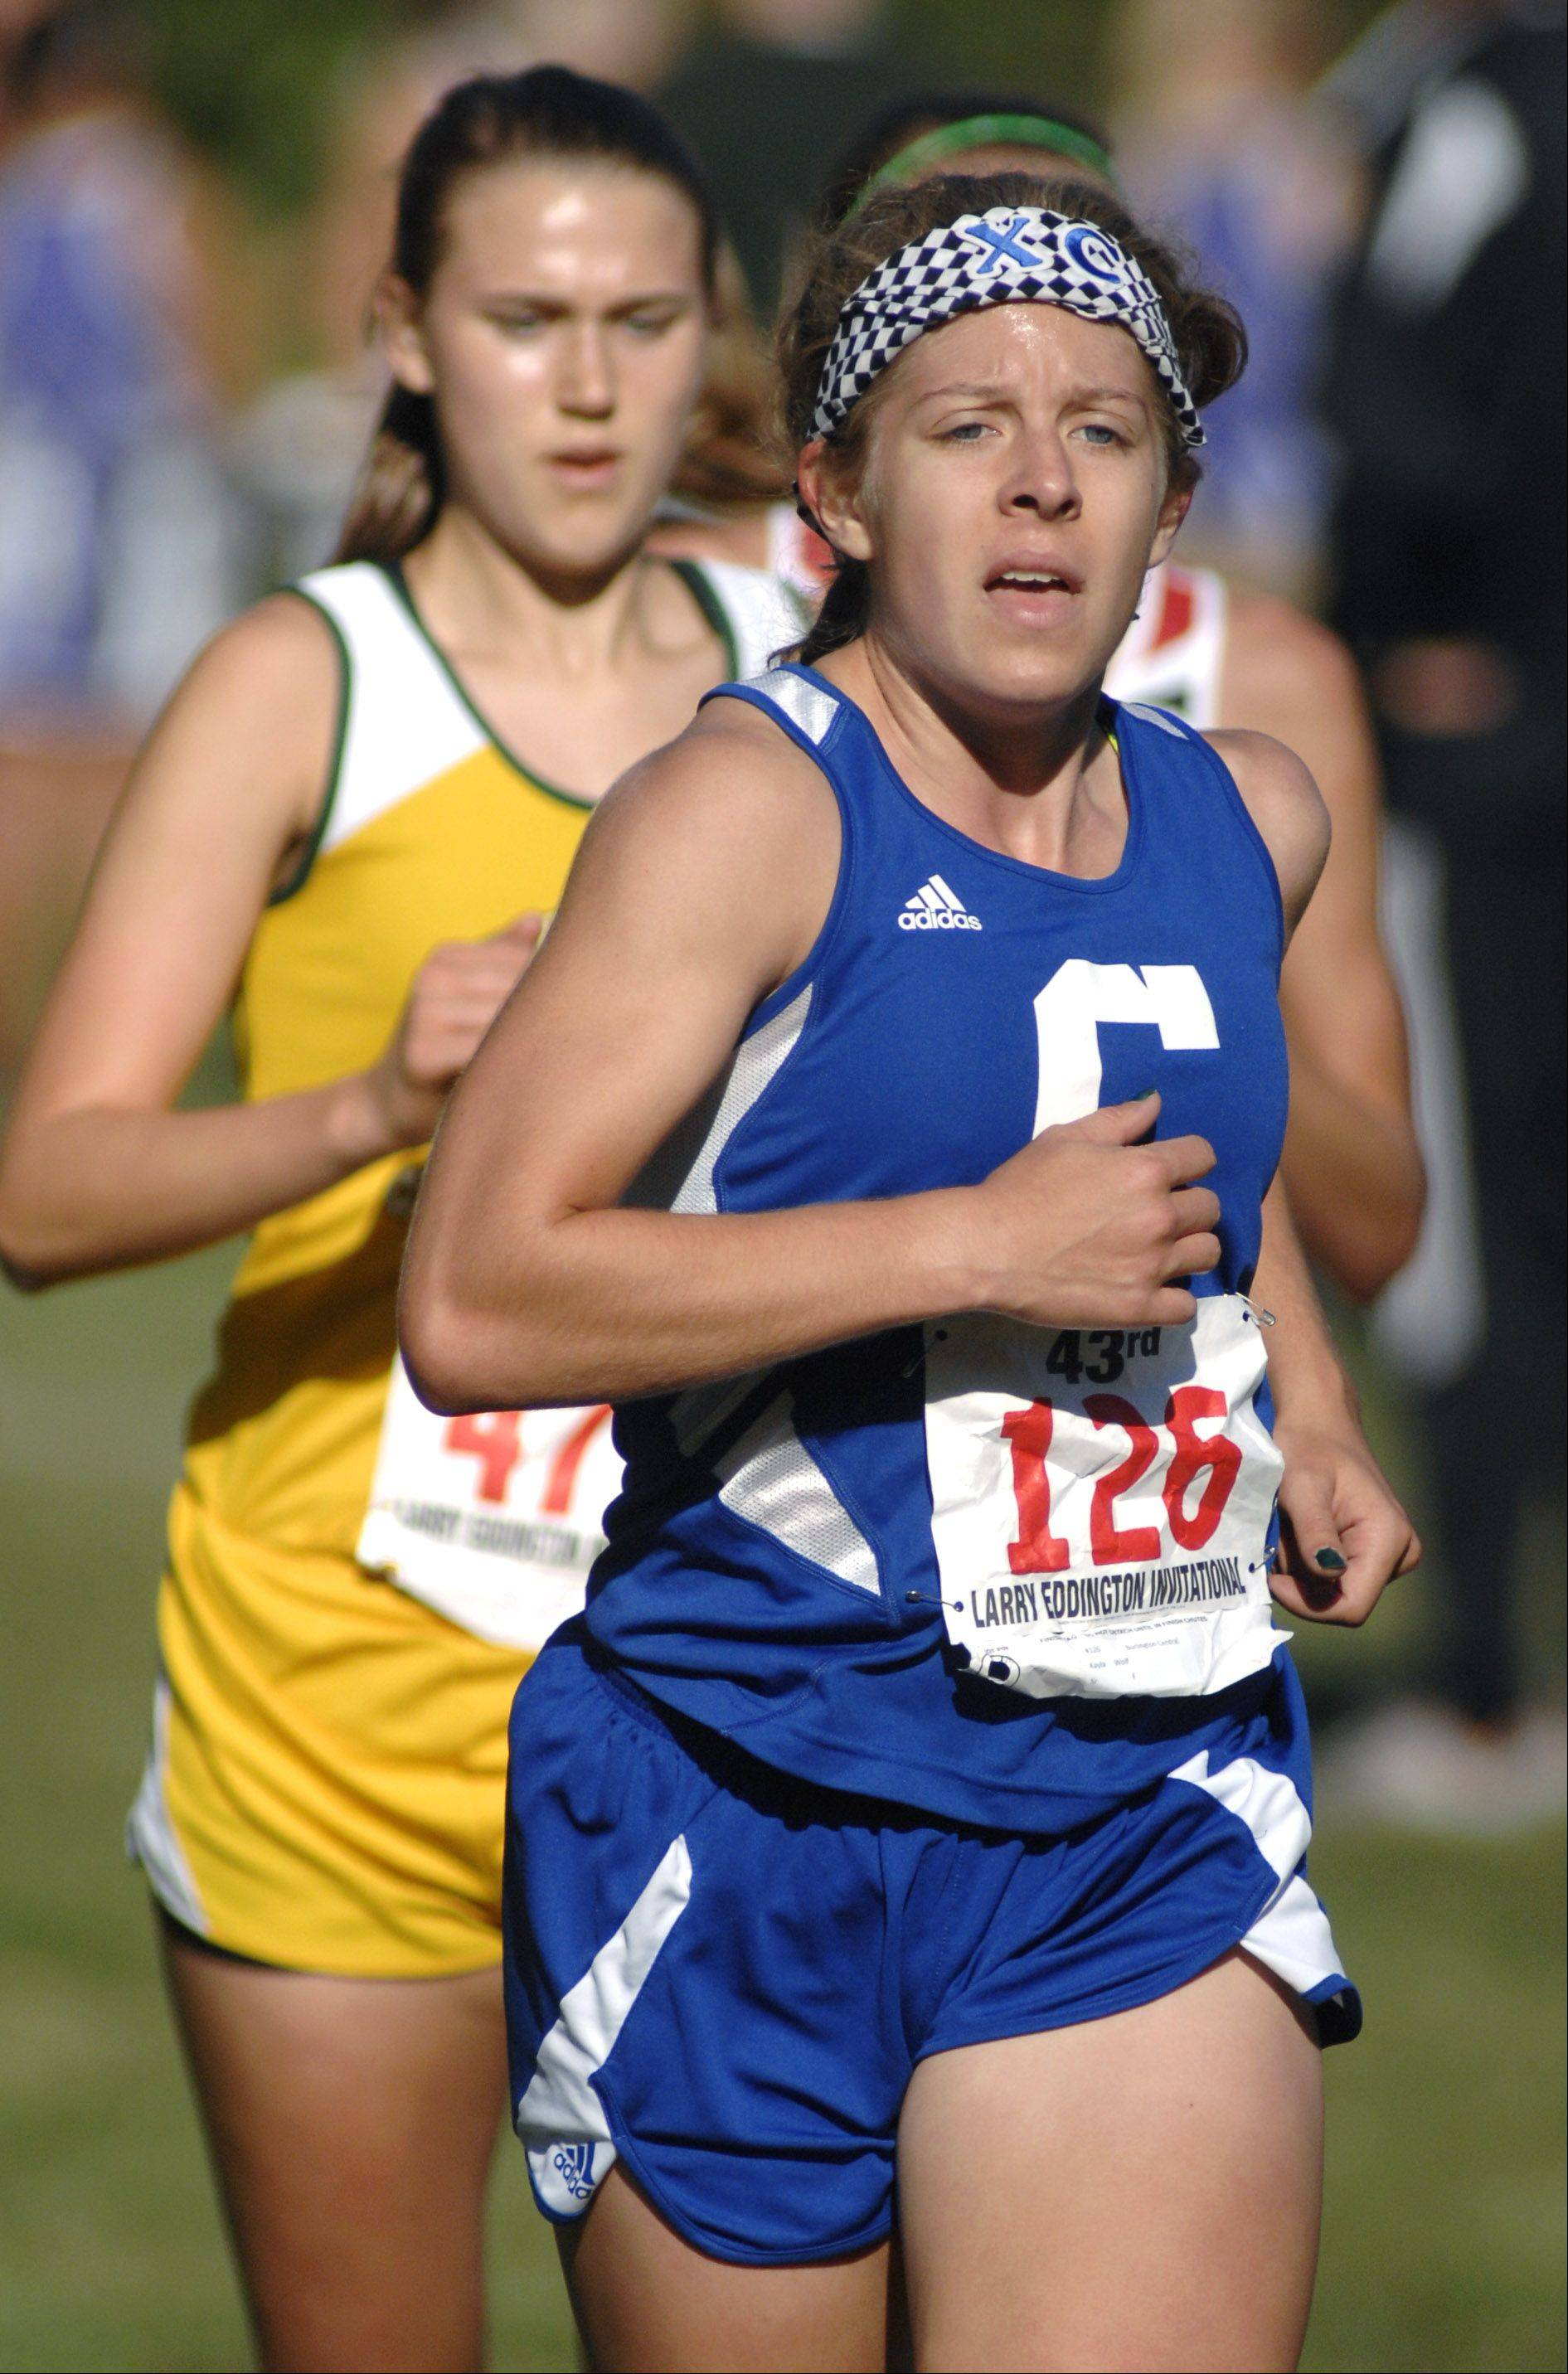 Burlington Central's Kayla Wolf at the Kaneland Eddington Invitational in Elburn on Saturday, September 15.